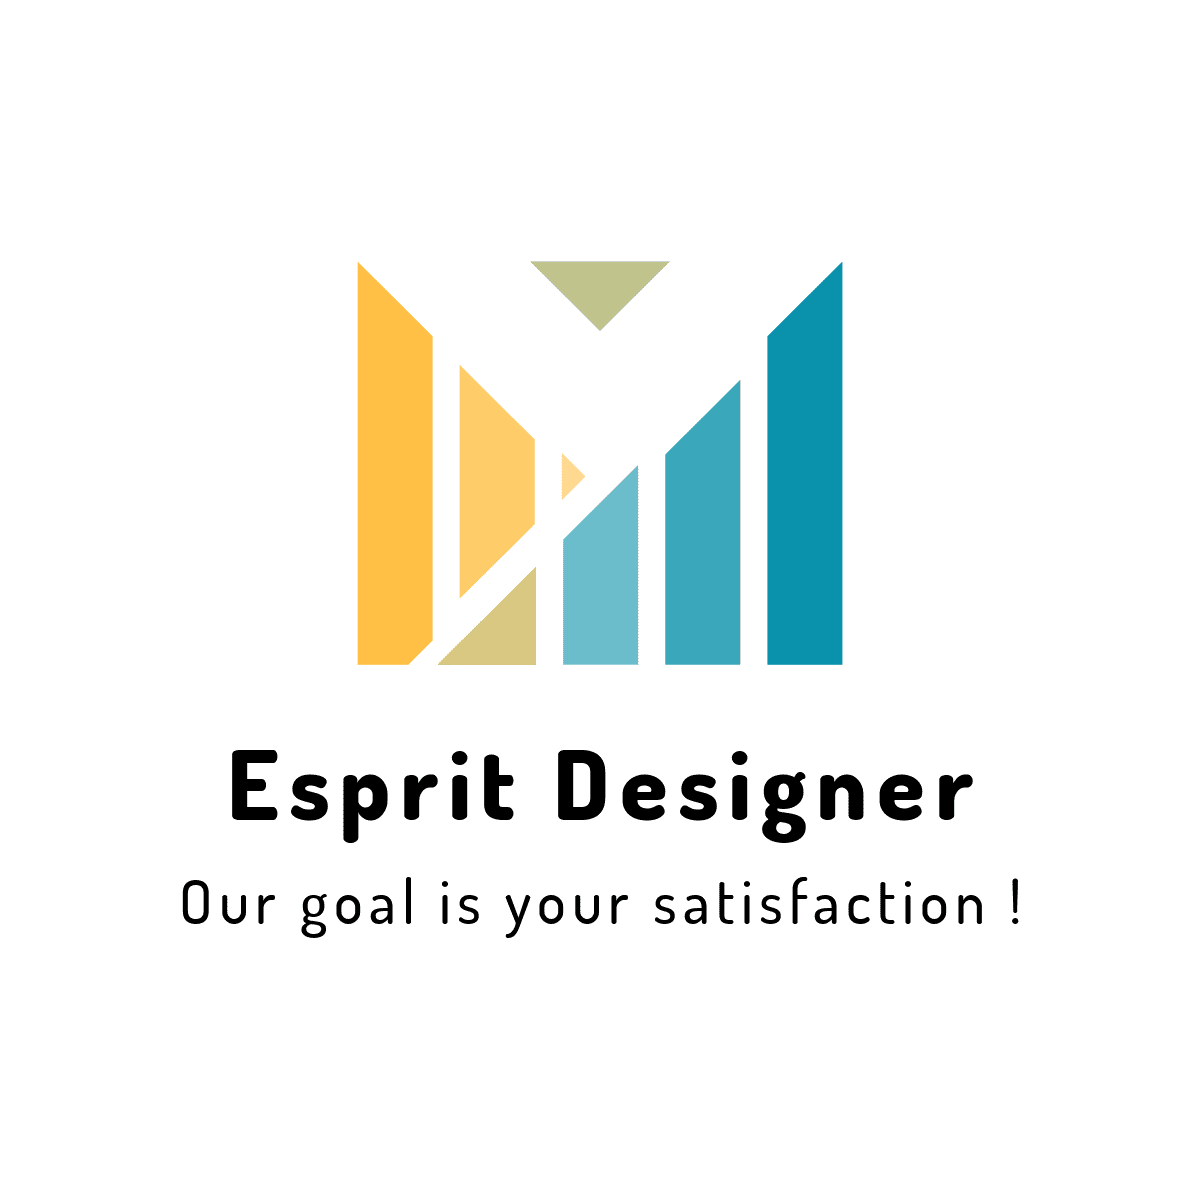 I will create a professional logo for your Website and Social Media